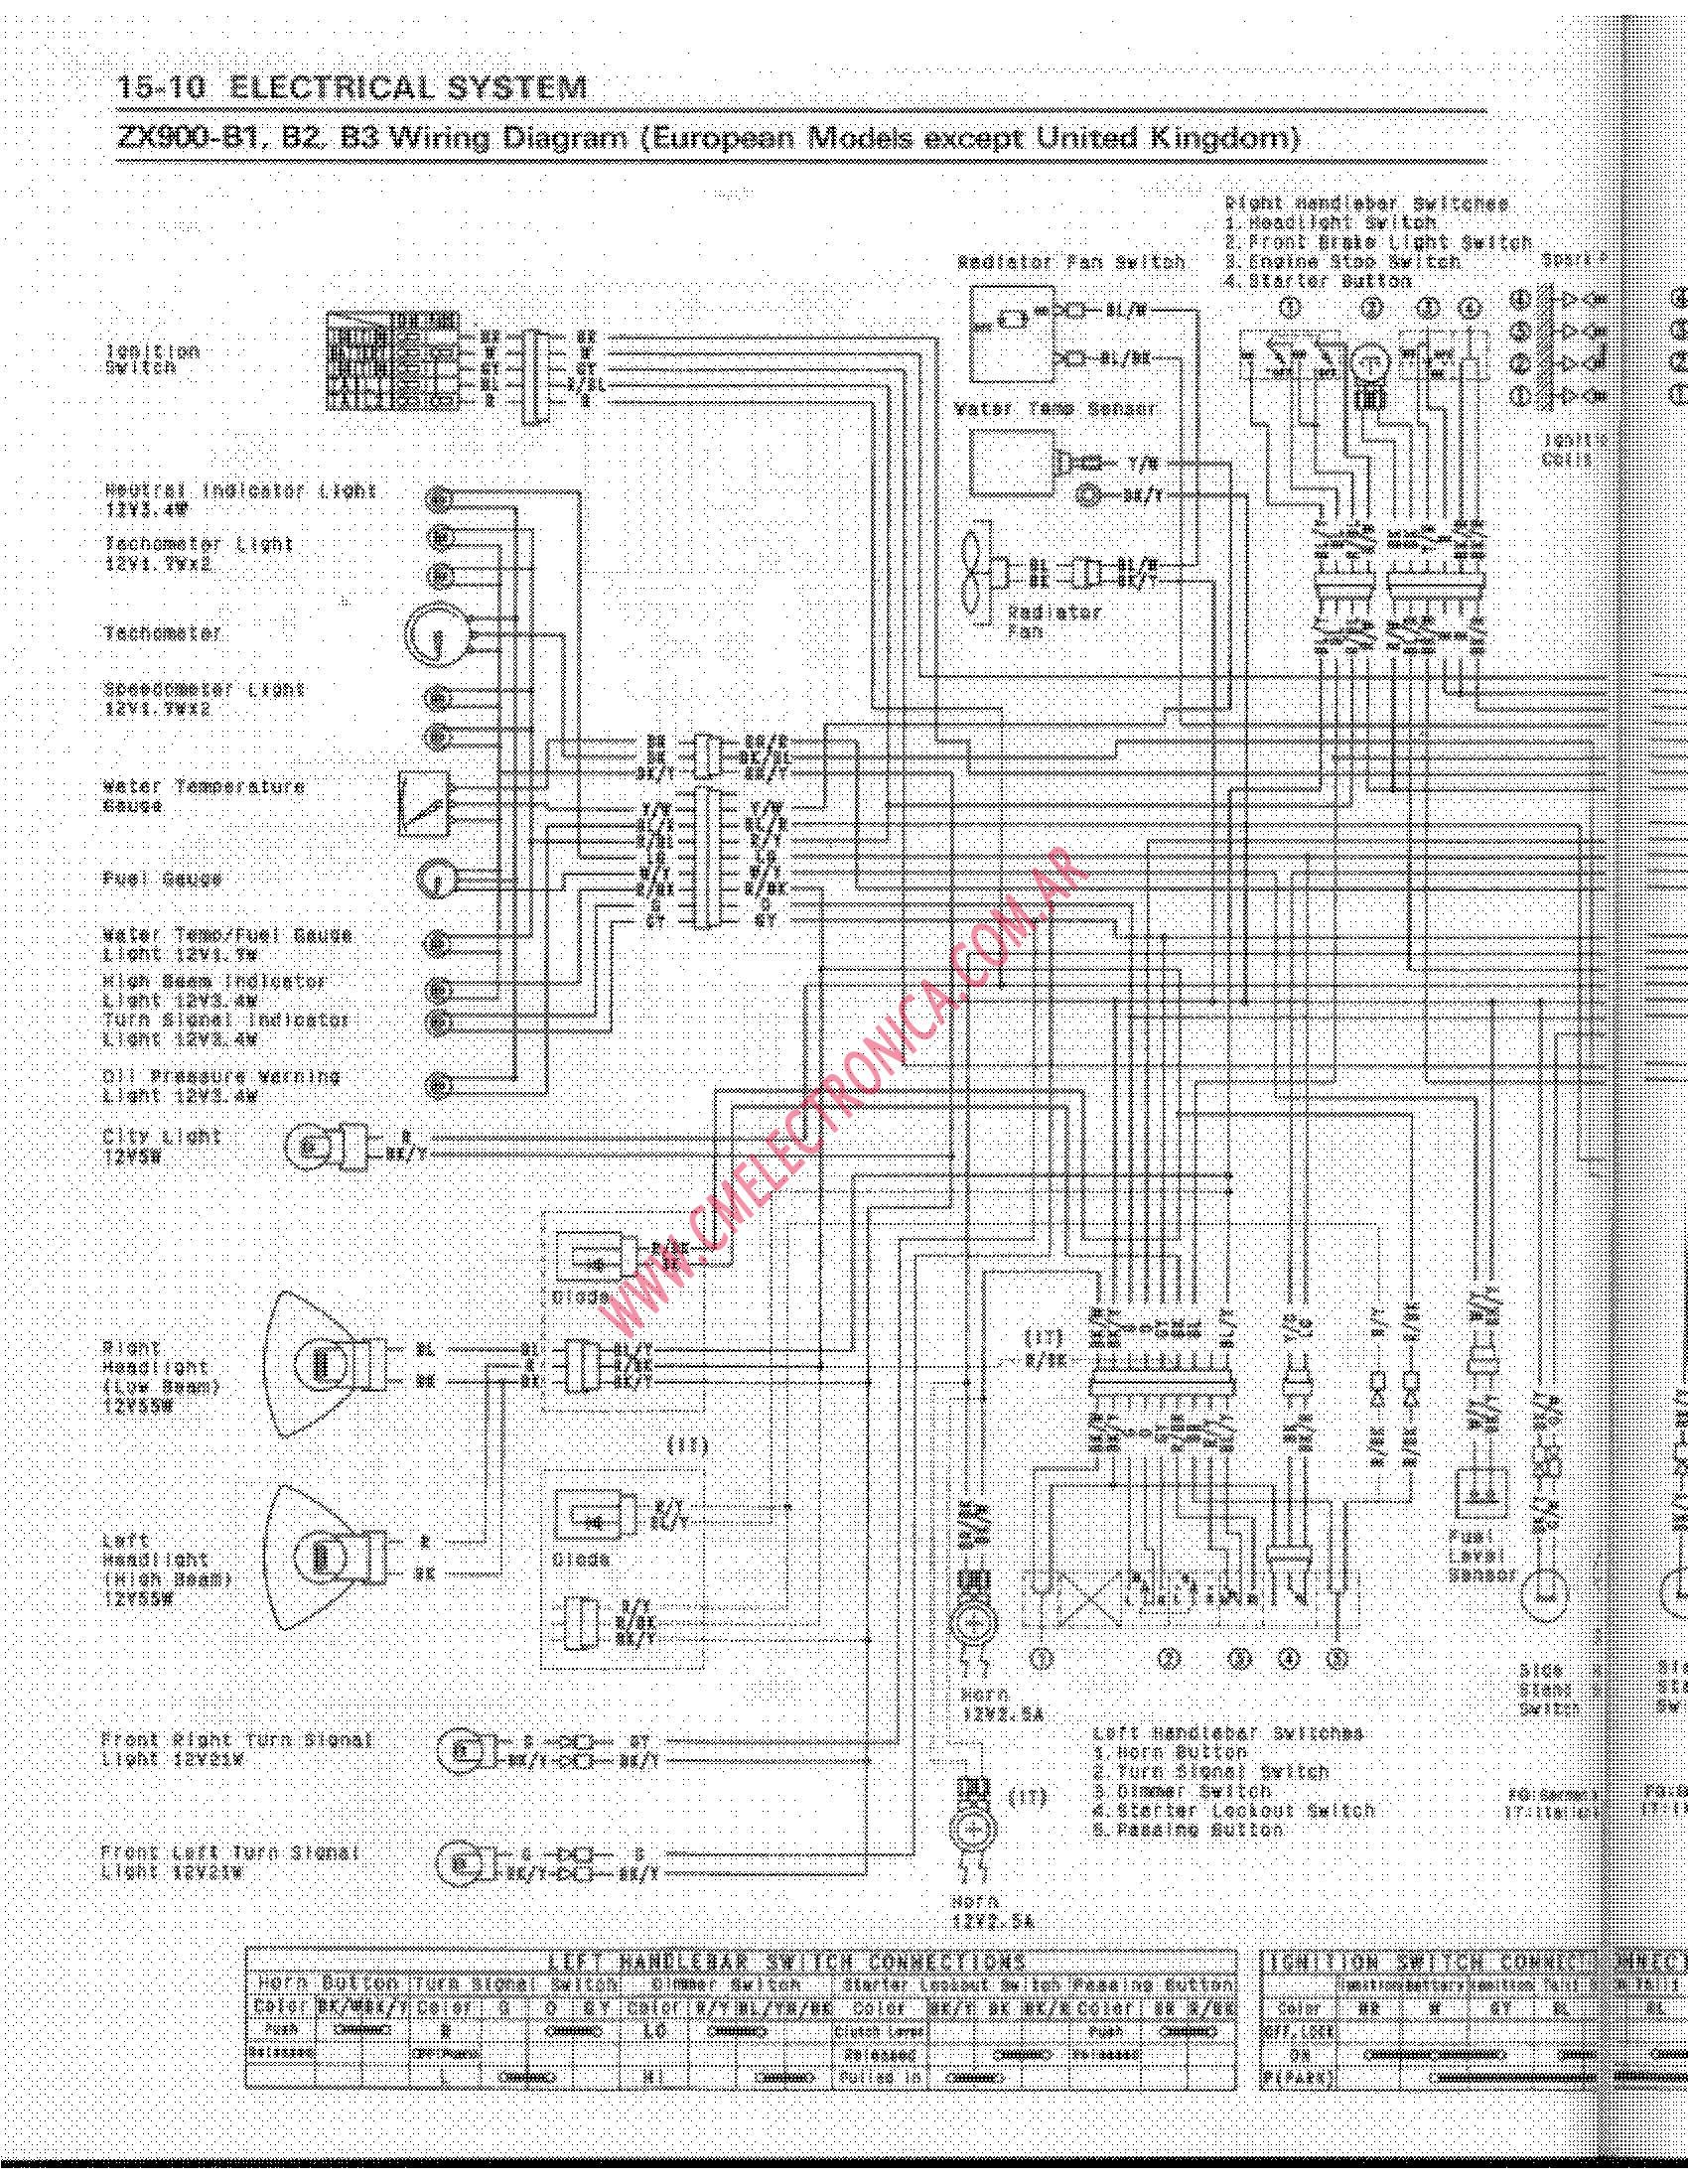 1999 Zx9r Wiring Diagram | Wiring Diagram Fender B Wiring Diagrams on fender p bass electronics diagram, fender champ wiring, fender telecaster three-way diagram, fender esquire wiring, fender 5-way switch diagram, fender princeton tube amp layout diagrams, fender s1 switch wiring, fender floyd rose, fender tele plus wiring, fender bass amps, fender wiring schematic 2 pickups 1 volume 2 tone 5-way switch, fender stratocaster wiring, fender 5 string bass, jazz bass control assembly diagrams, jaguar electrical diagrams,